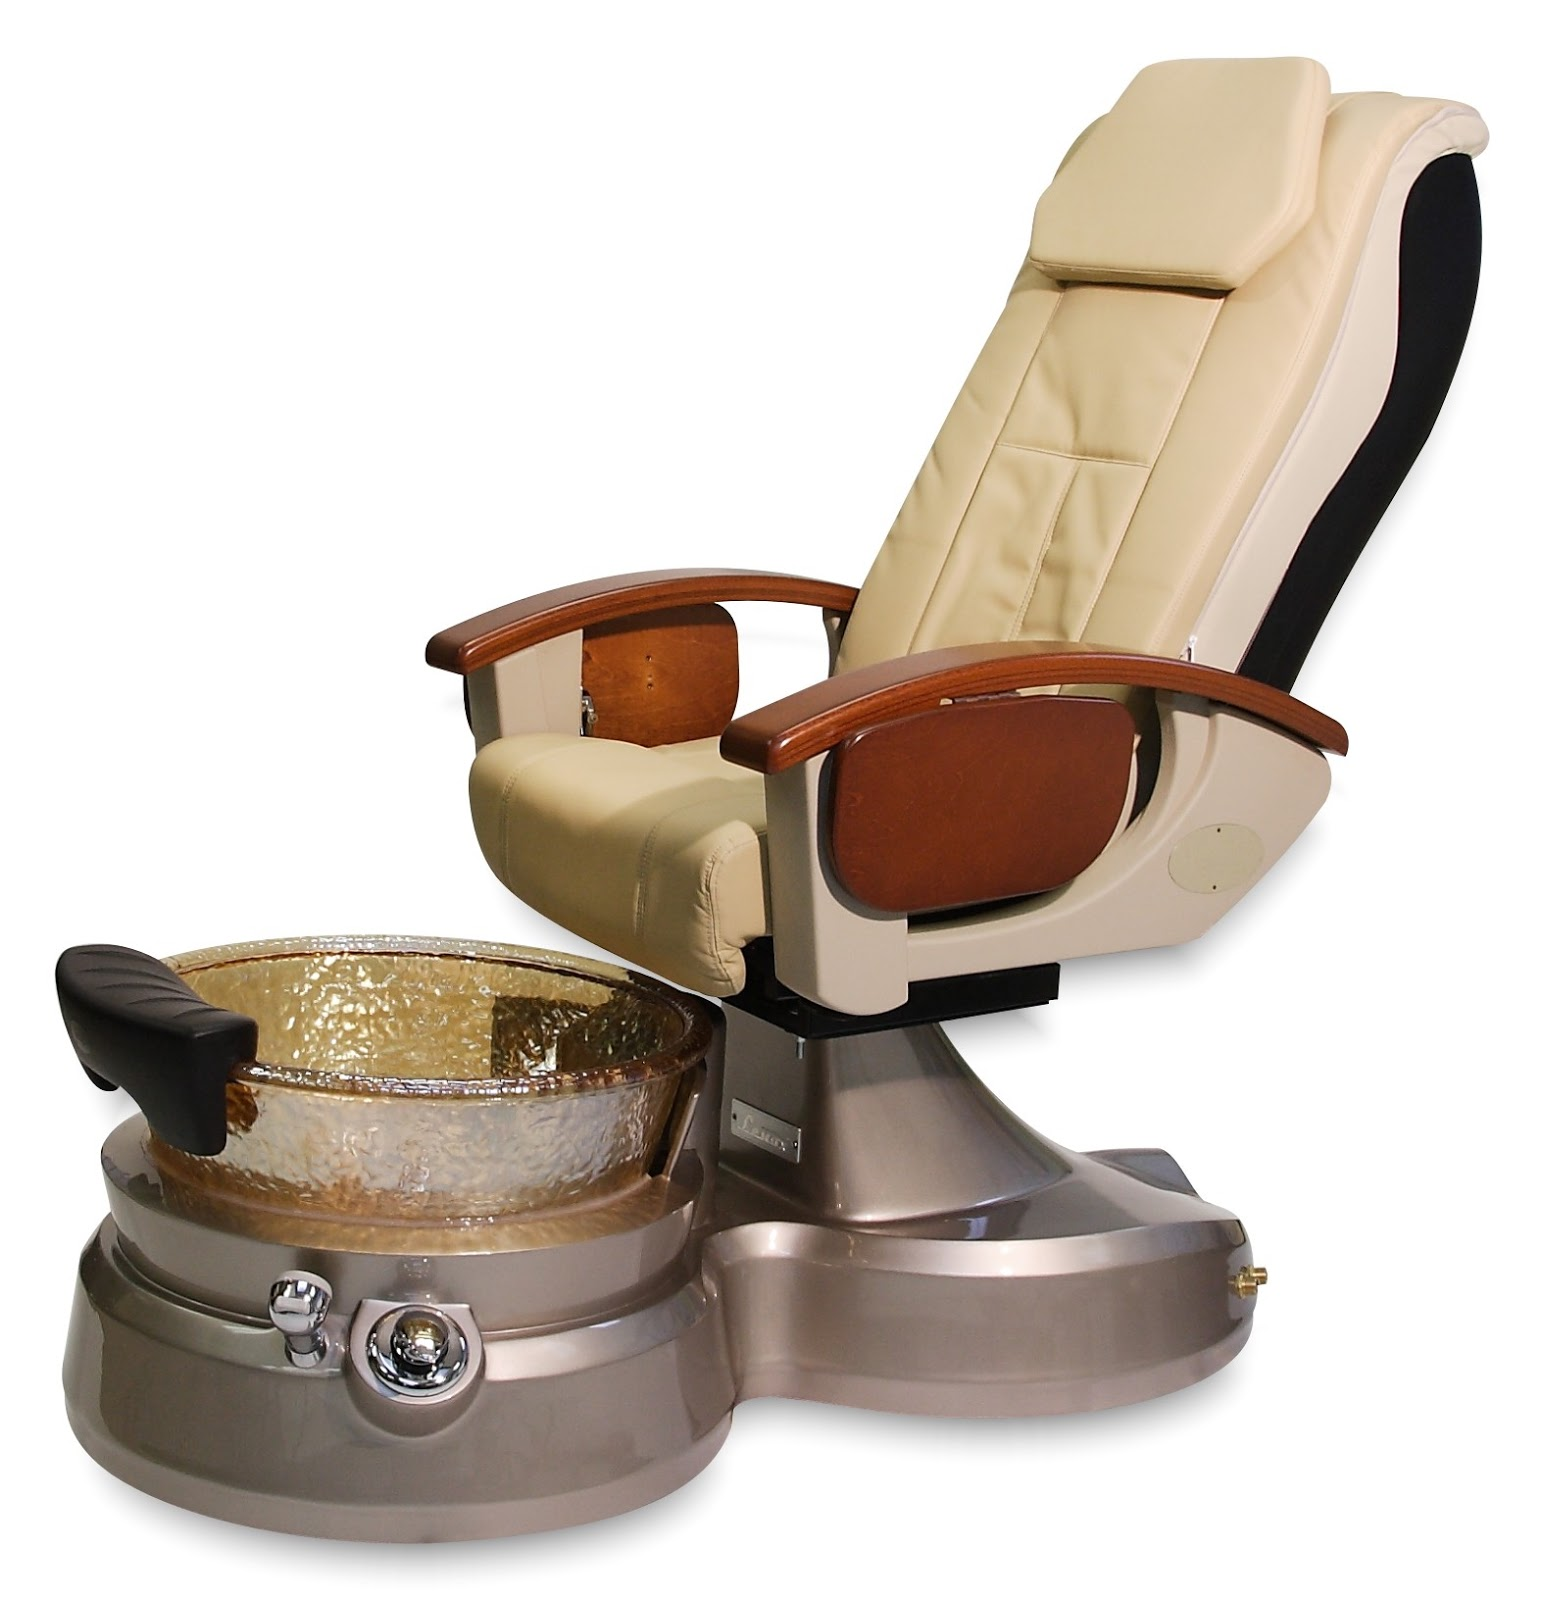 pedicure spa chair salon furniture spa pedicure chair Home pedicure chairs what to look for